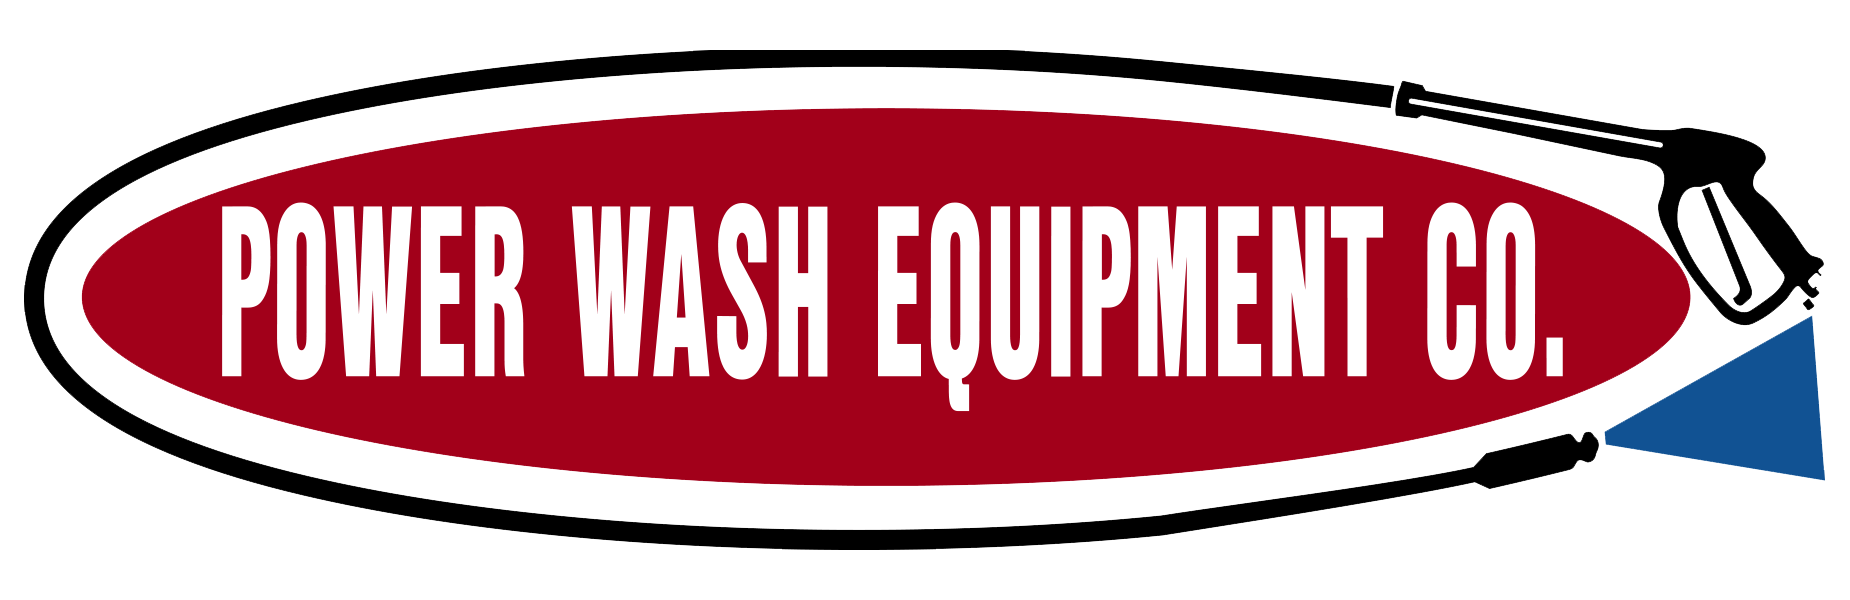 Power Wash Equipment